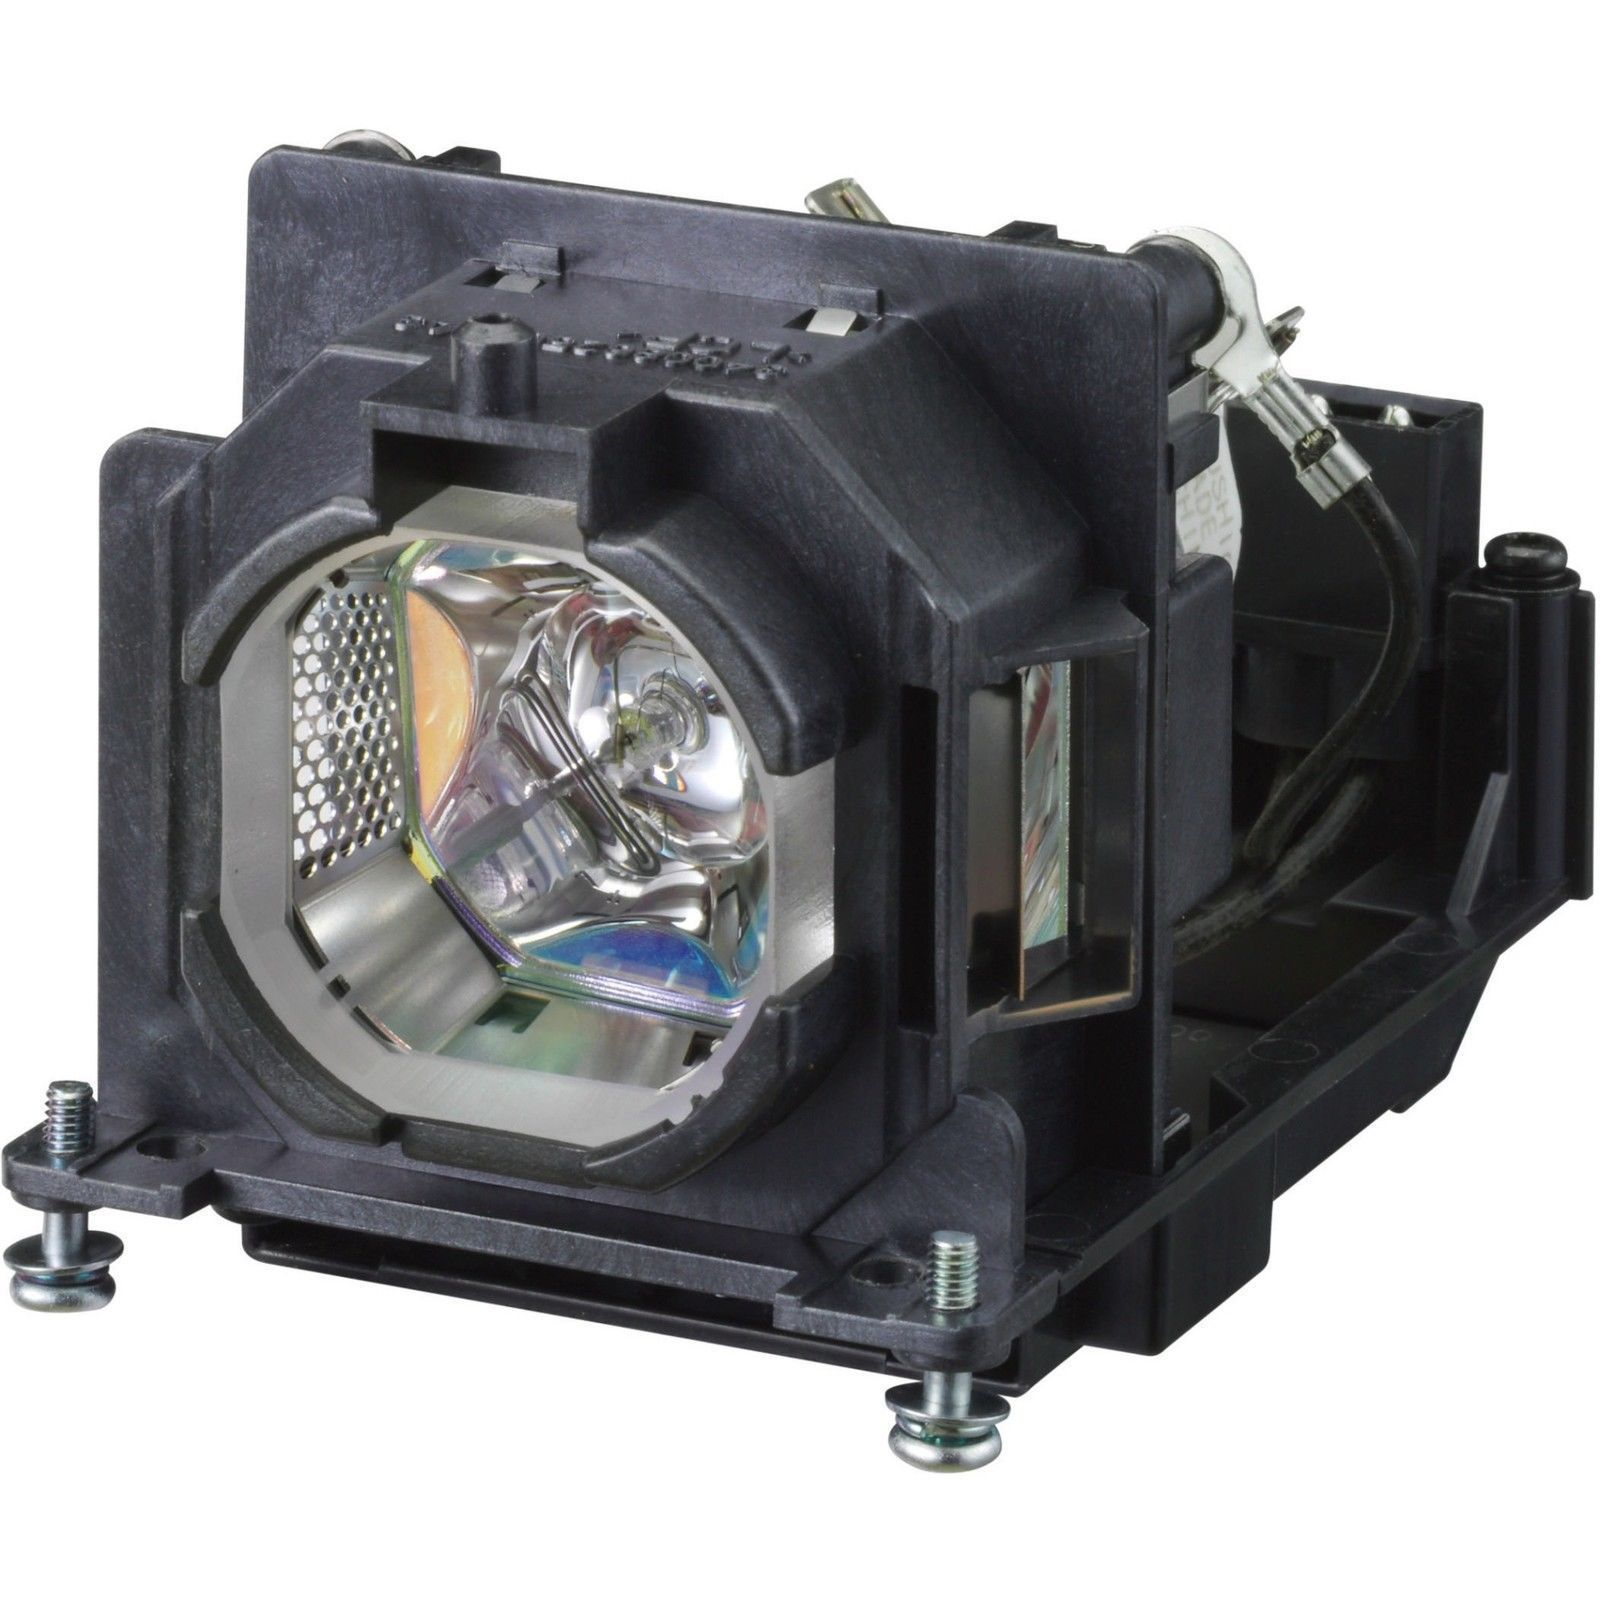 Projector Lamp Bulb ET-LAL500 for Panasonic PT-LW330 PT-LW280 PT-LB360 PT-LB330 PT-LB300 PT-LB280 PT-TW340 PT-TW341 with housing original replacement bare bulb panasonic et lal500 for pt lb280 pt tx400 pt lw330 pt lw280 pt lb360 pt lb330 pt lb300 projectors